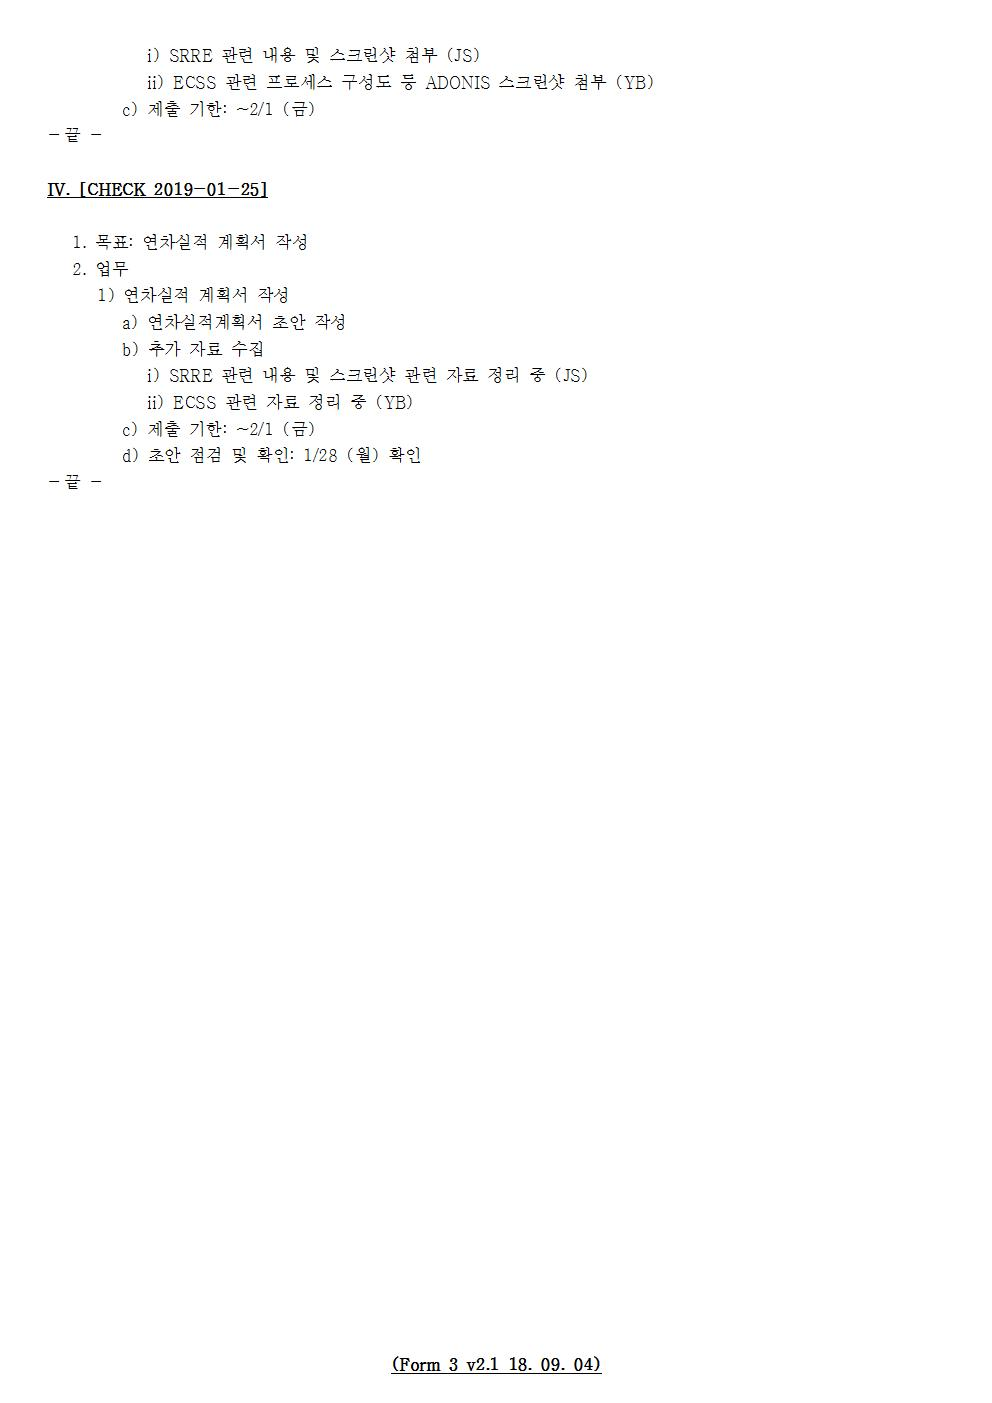 D-[19-005-RD-05]-[Project-Space]-[2019-01-25][YB]002.jpg